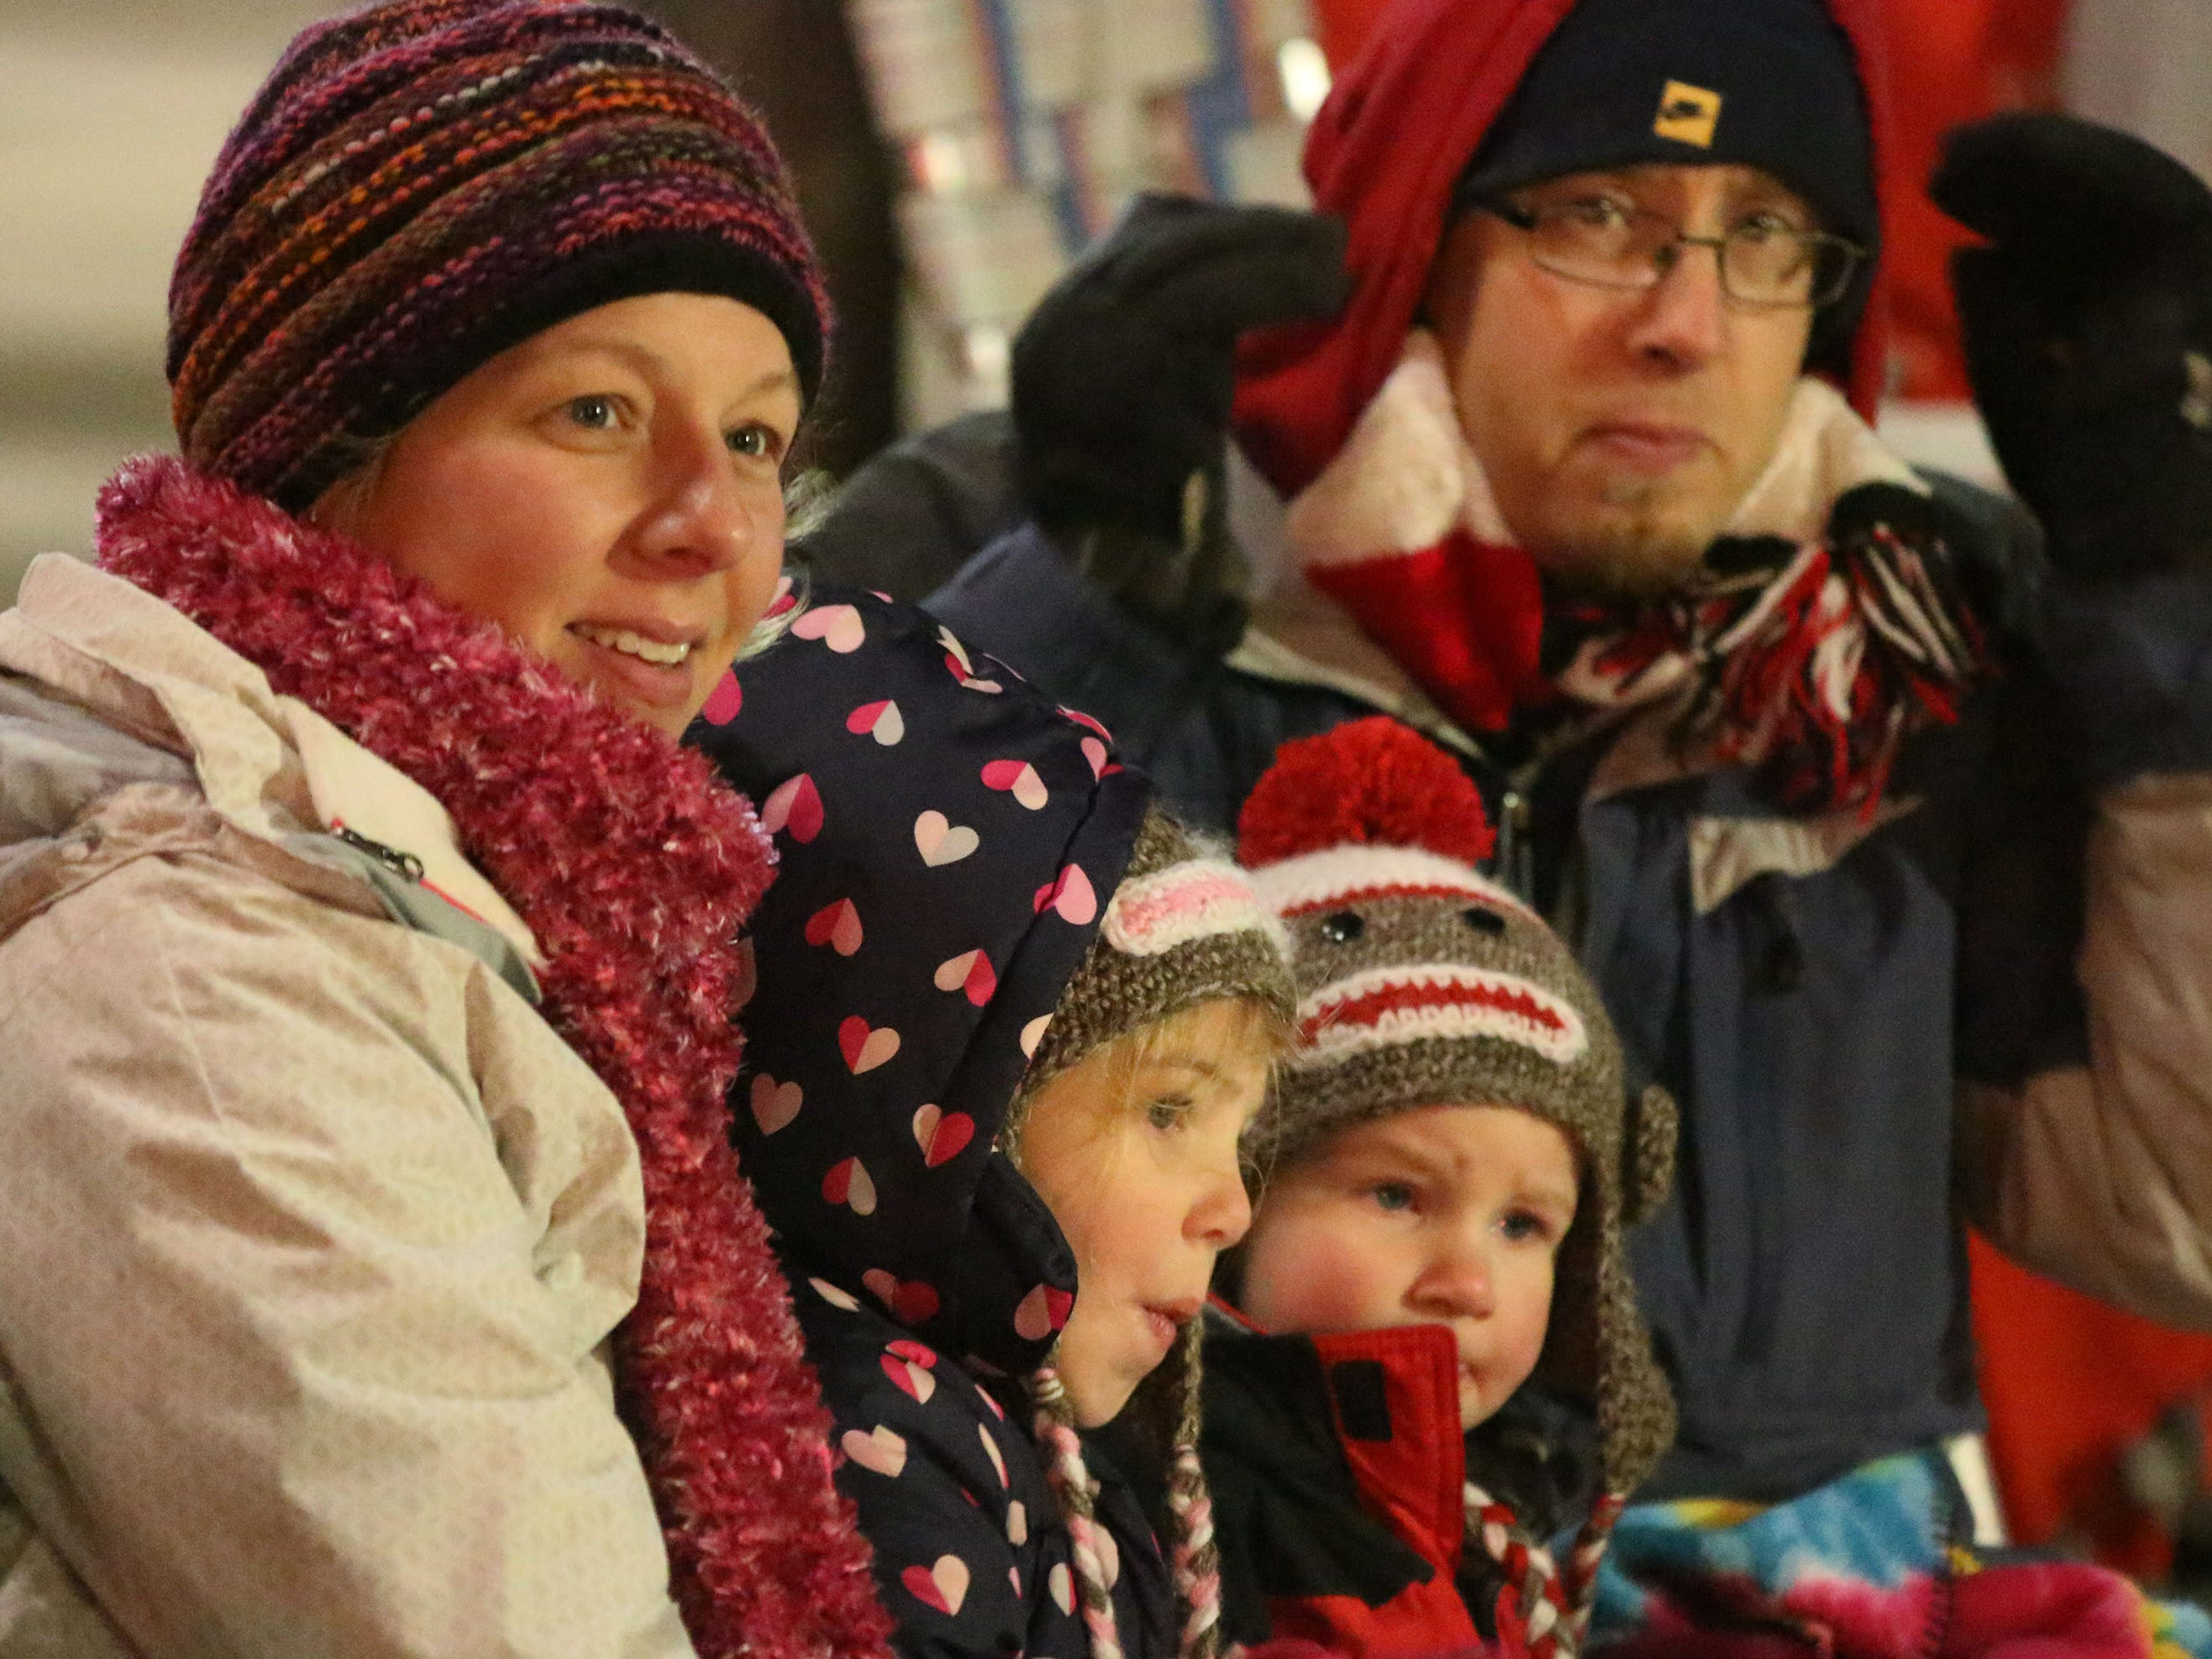 Elizabeth Burch, left, watches the parade with her children Hannah, 4, Elijah 2, and her husband Ryan during the 26th Annual Jaycees Holiday Parade, Sunday, November 25, 2018 in Sheboygan, Wis.